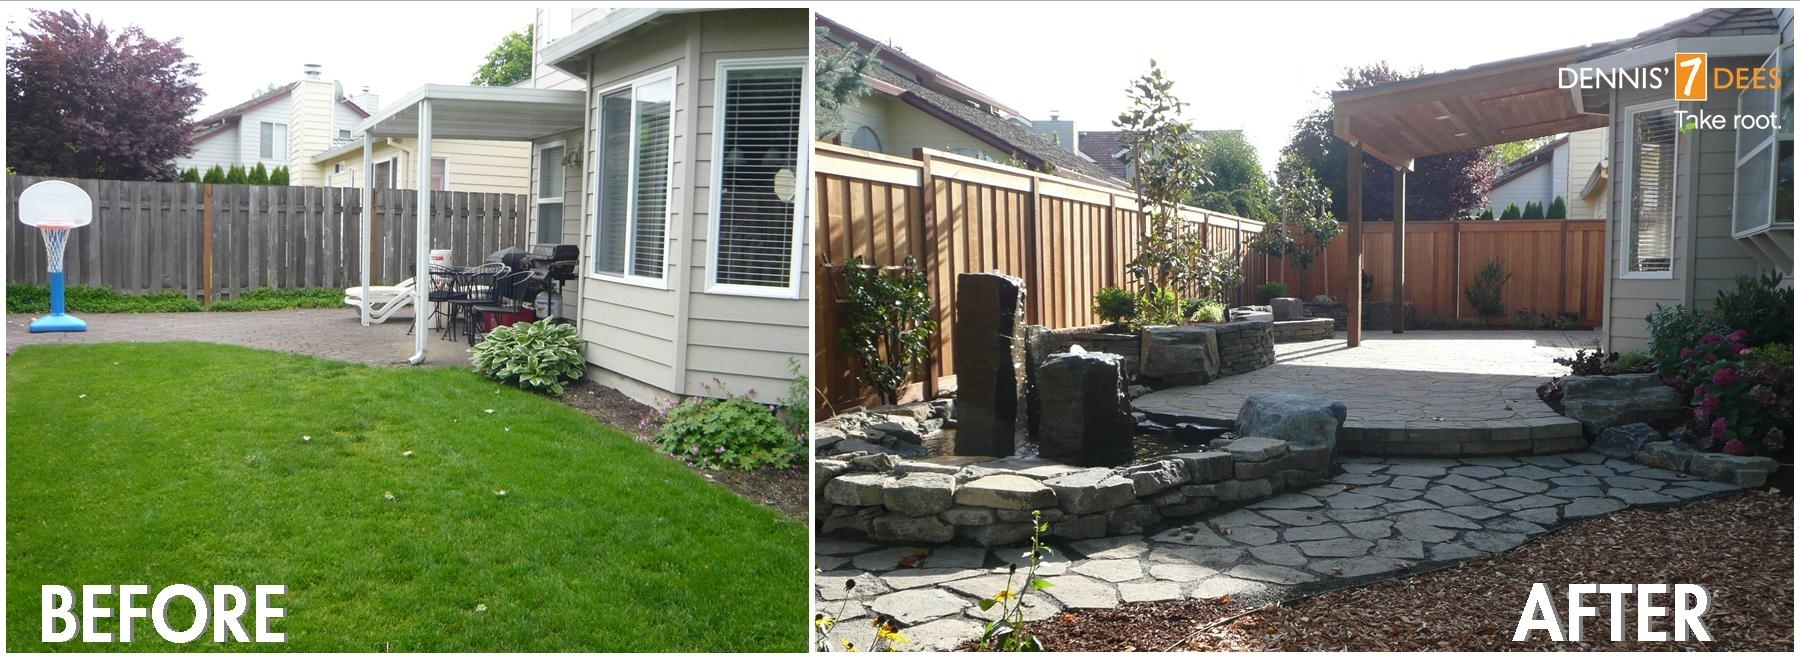 Glamorous Small Backyard Ideas Before After Pictures Design Ideas for Backyard Garden Ideas Before And After